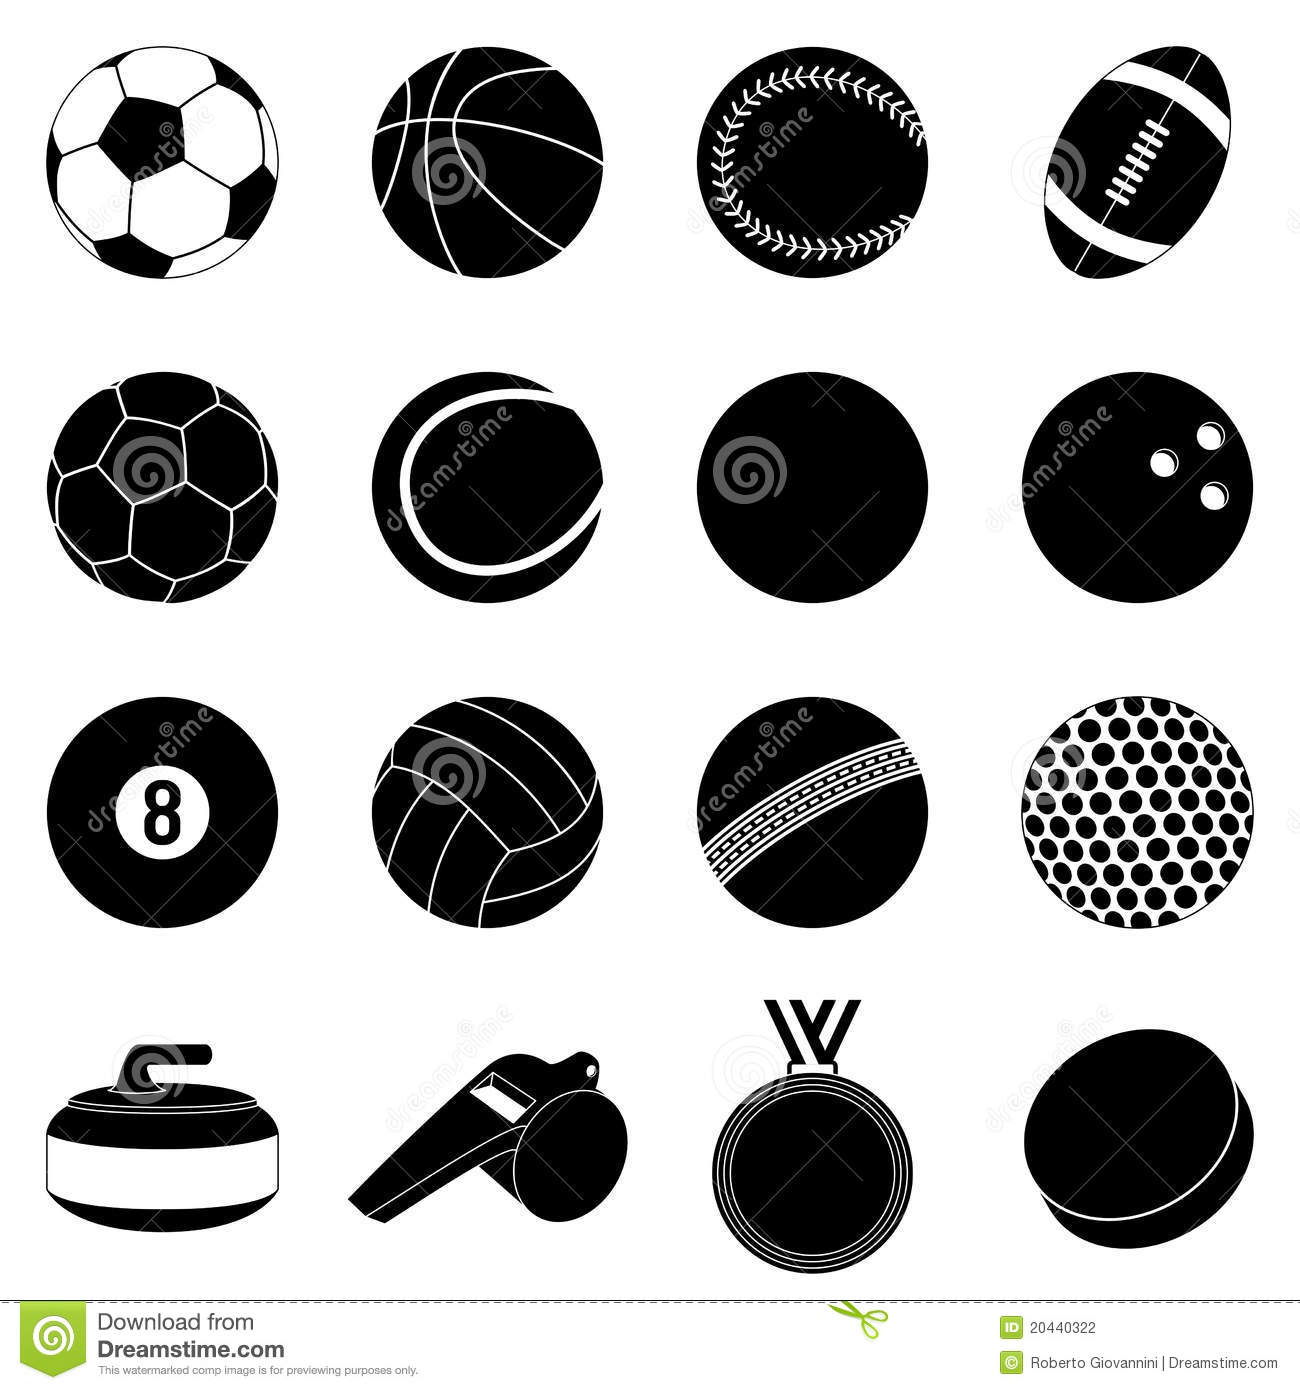 balls sport silhouettes cricket background vector silhouette ball sports preview dreamstime